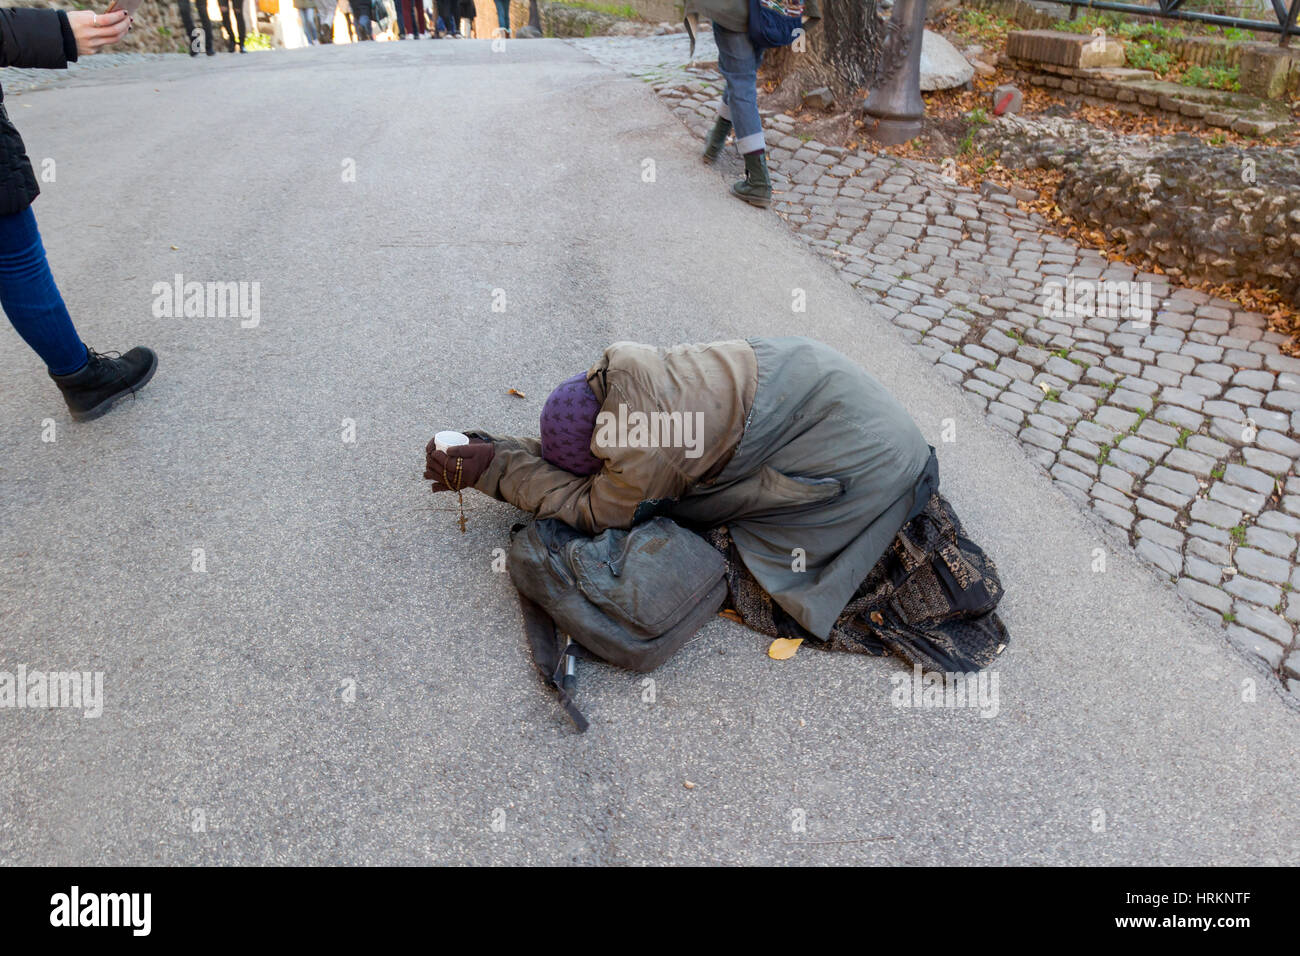 A beggar on the street in Rome, Italy. - Stock Image